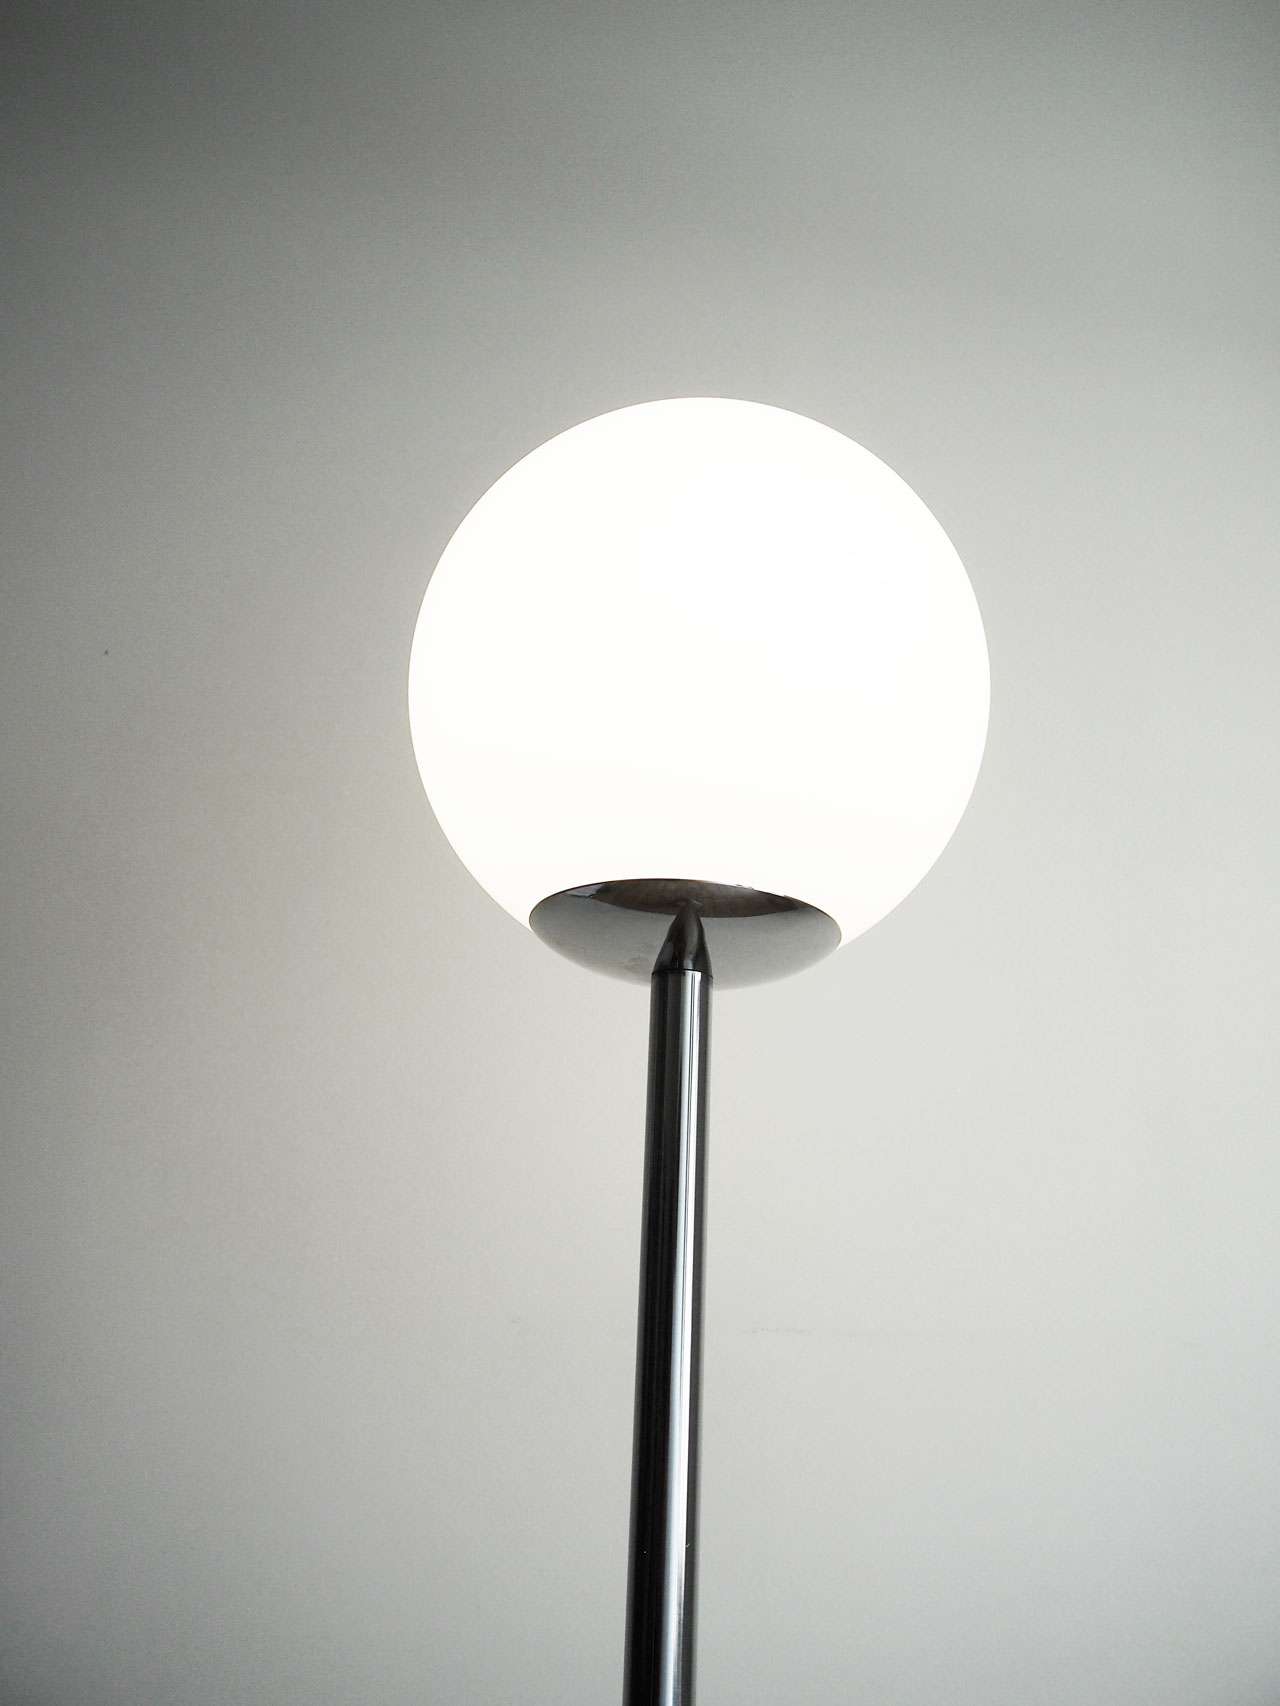 DIY floor lamp designed by Aandersson